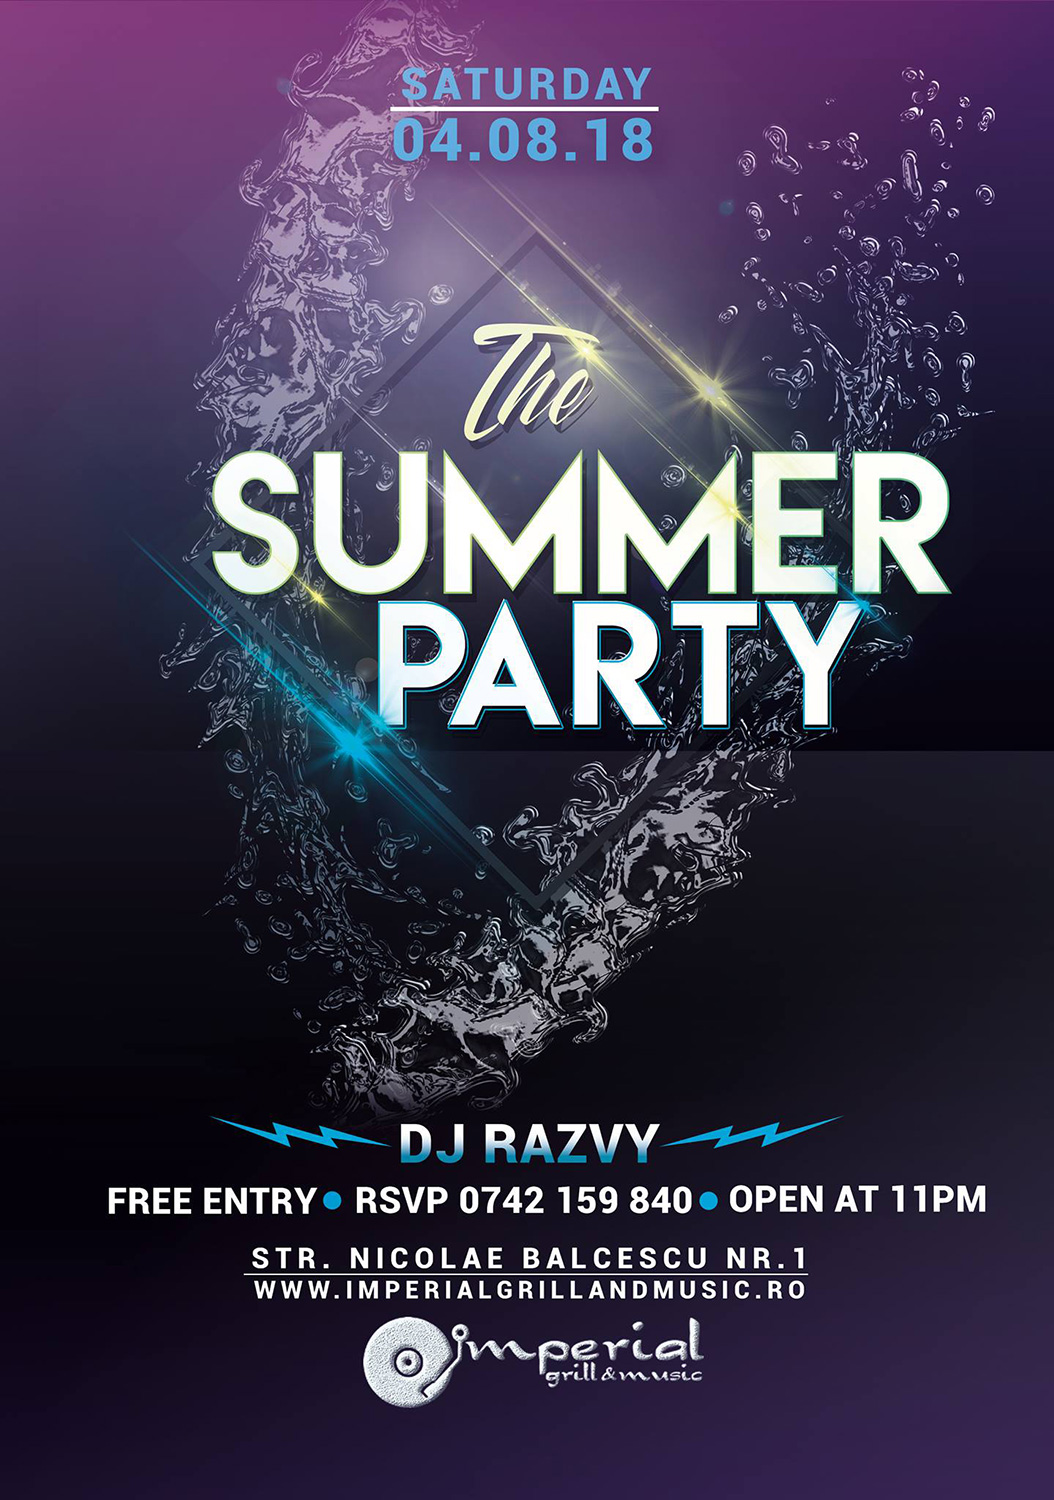 The Summer Party